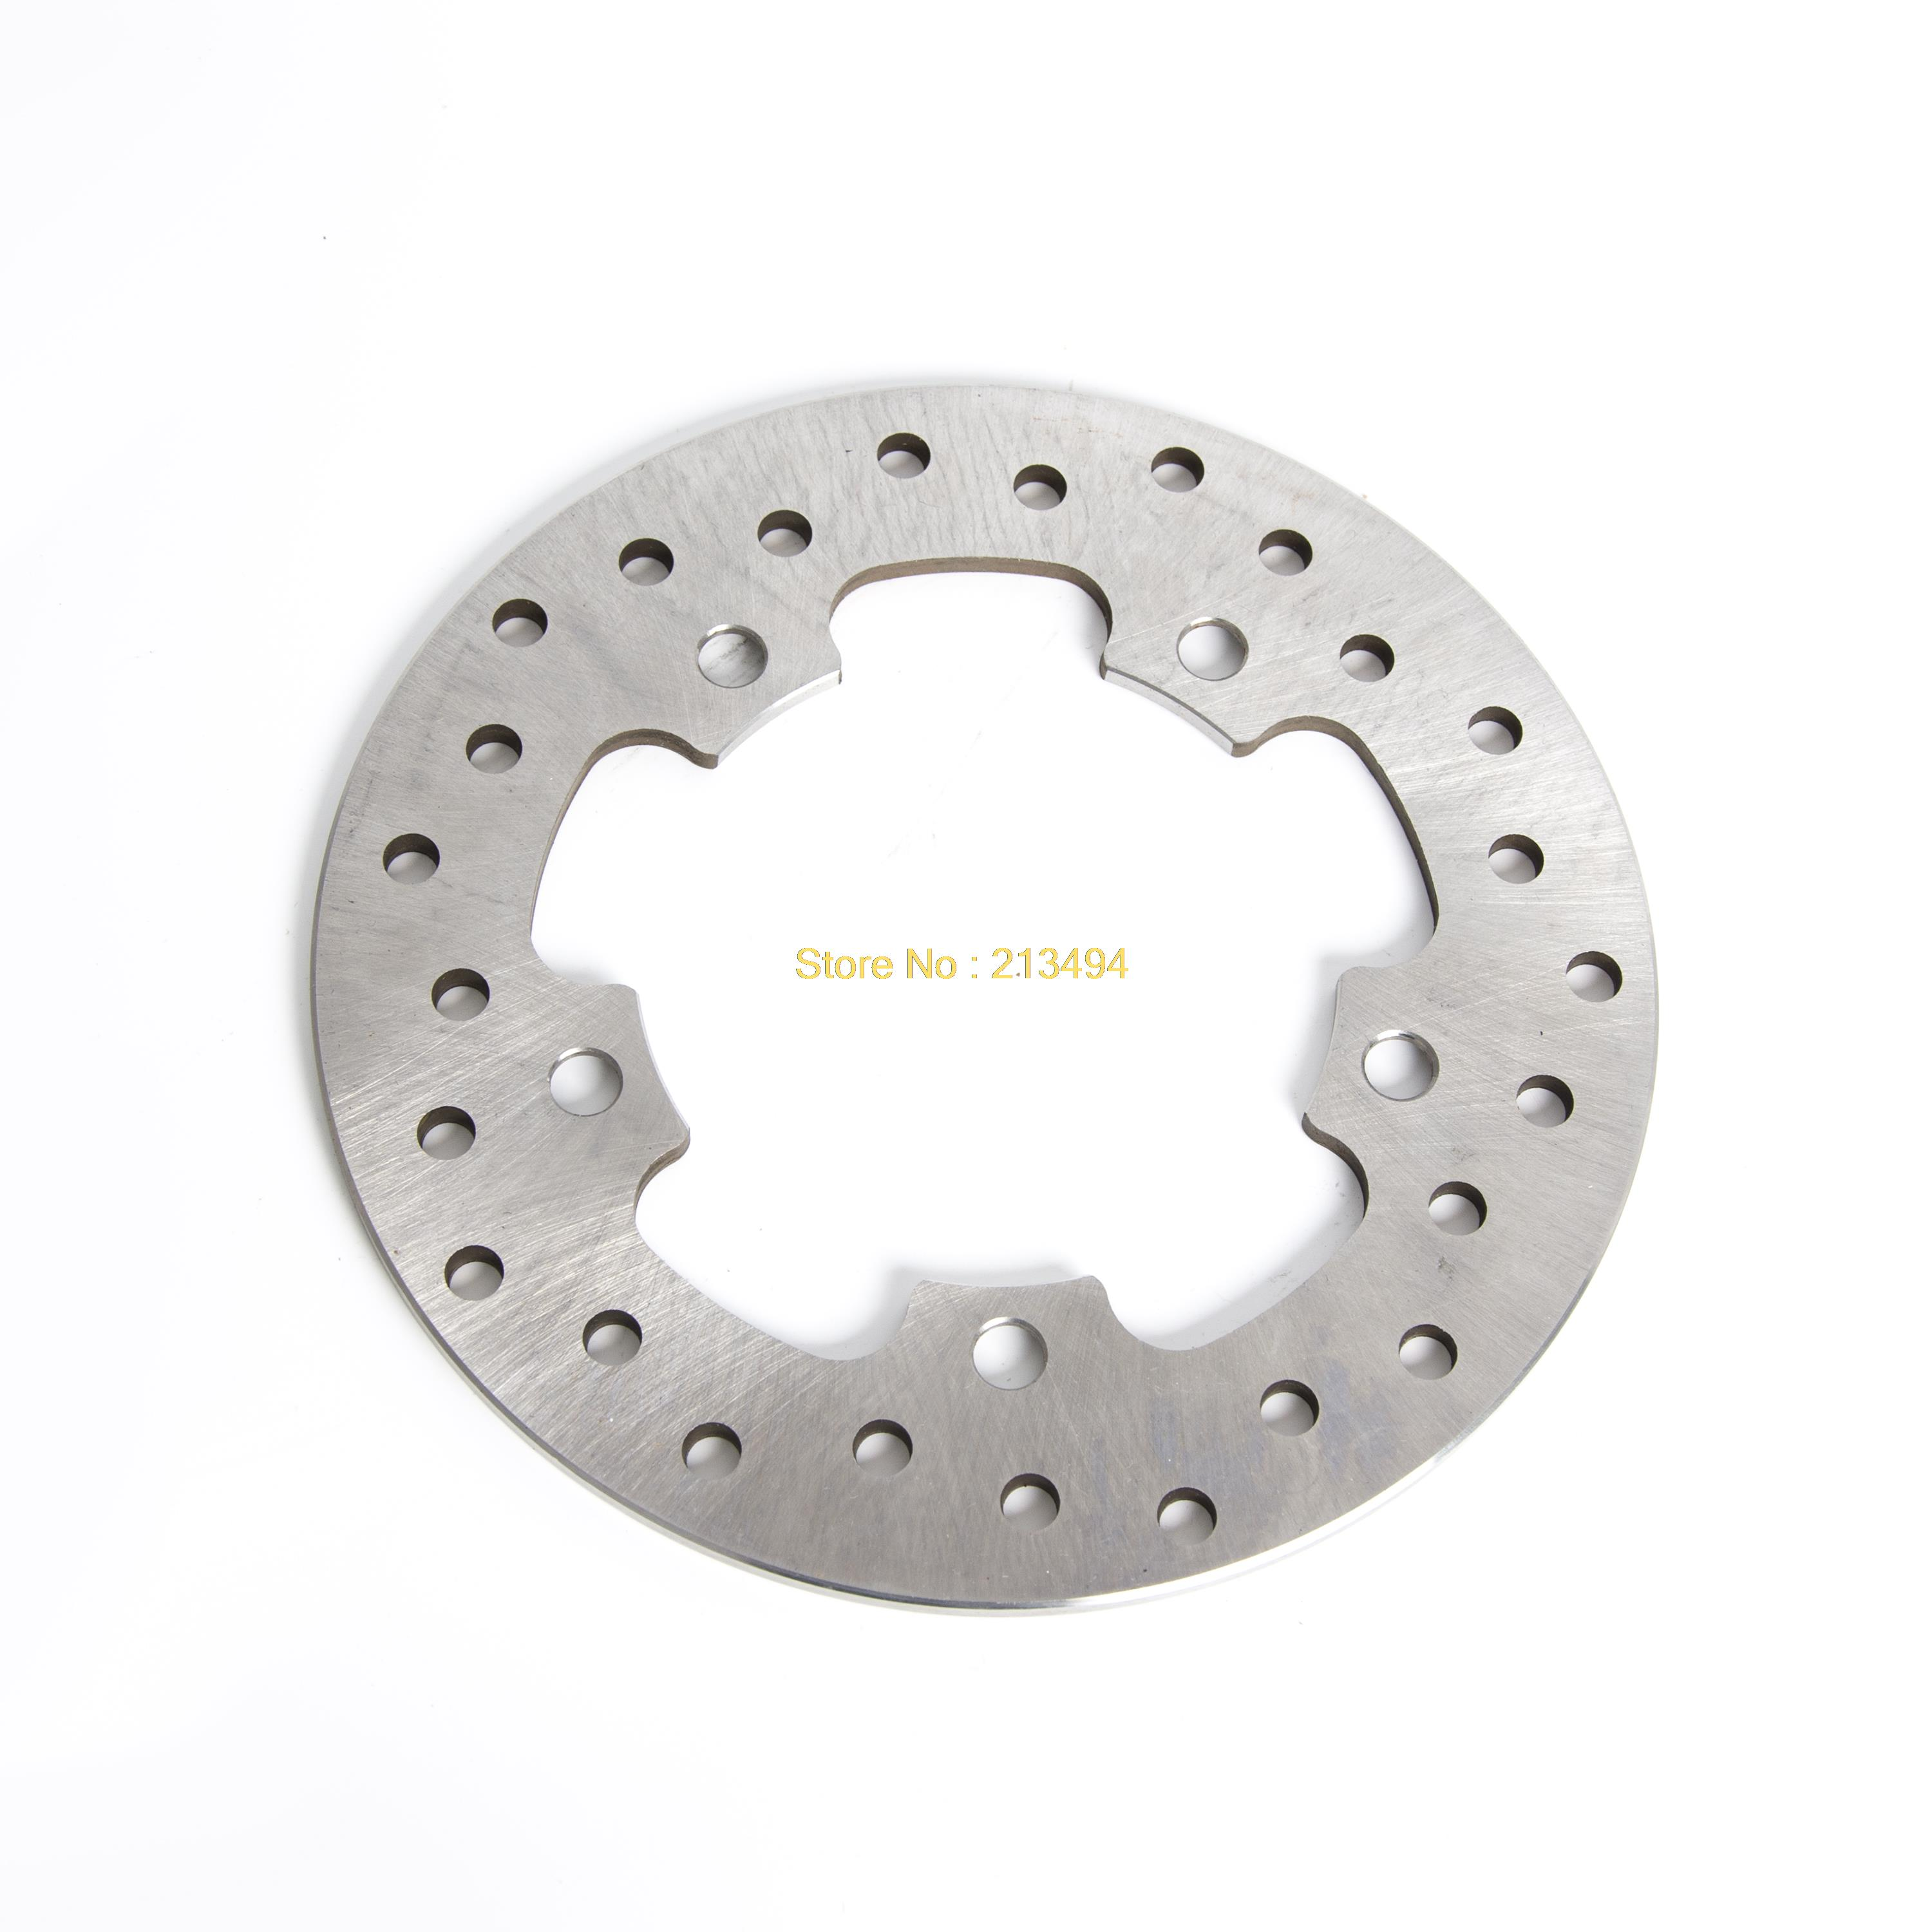 Motorcycle Steel Rear Brake Disc Rotor For Suzuki AN250 K1/K2 AN 250 W/X/Y AN 400 X/Y/K1/K2 Burgman/Skywave thchi cm 11 rechargeable digital voice recorder mp3 player gray 8gb